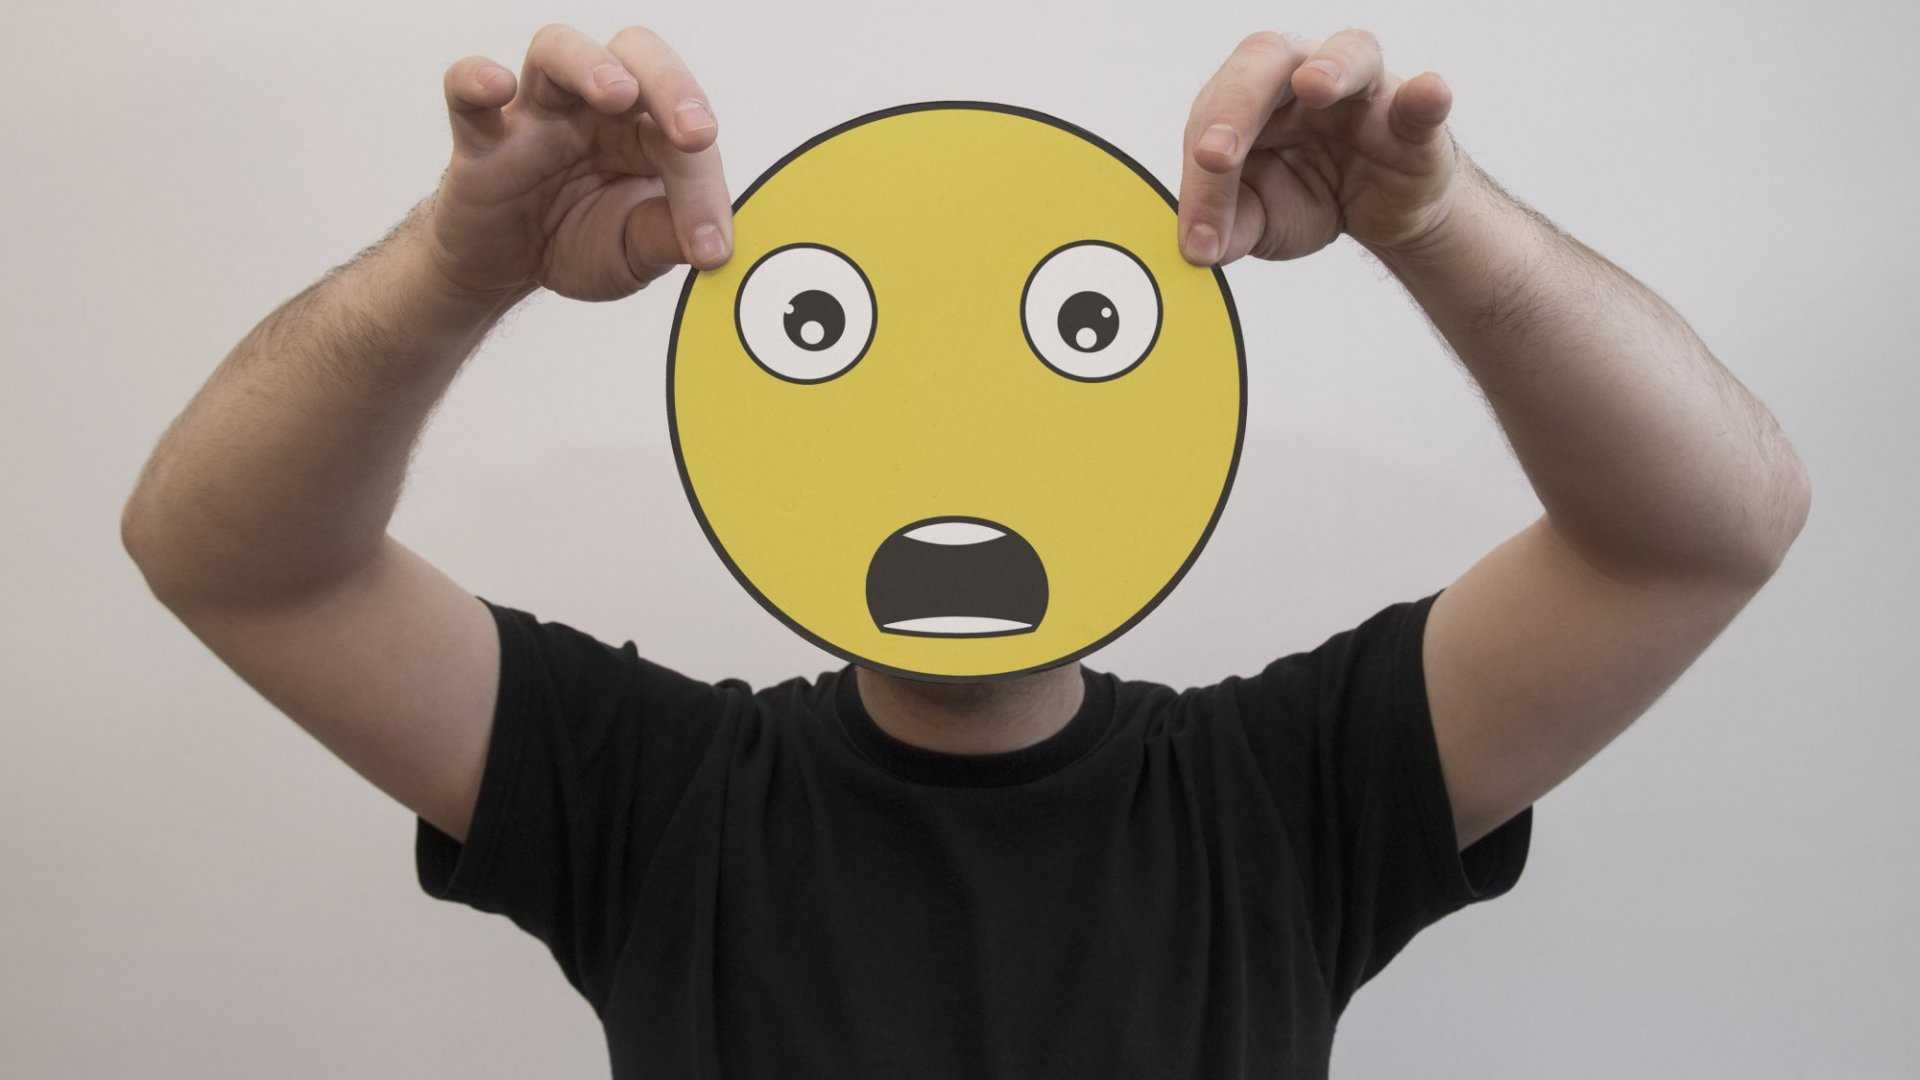 3 Simple Rules to Help You Master the Art of Emojis